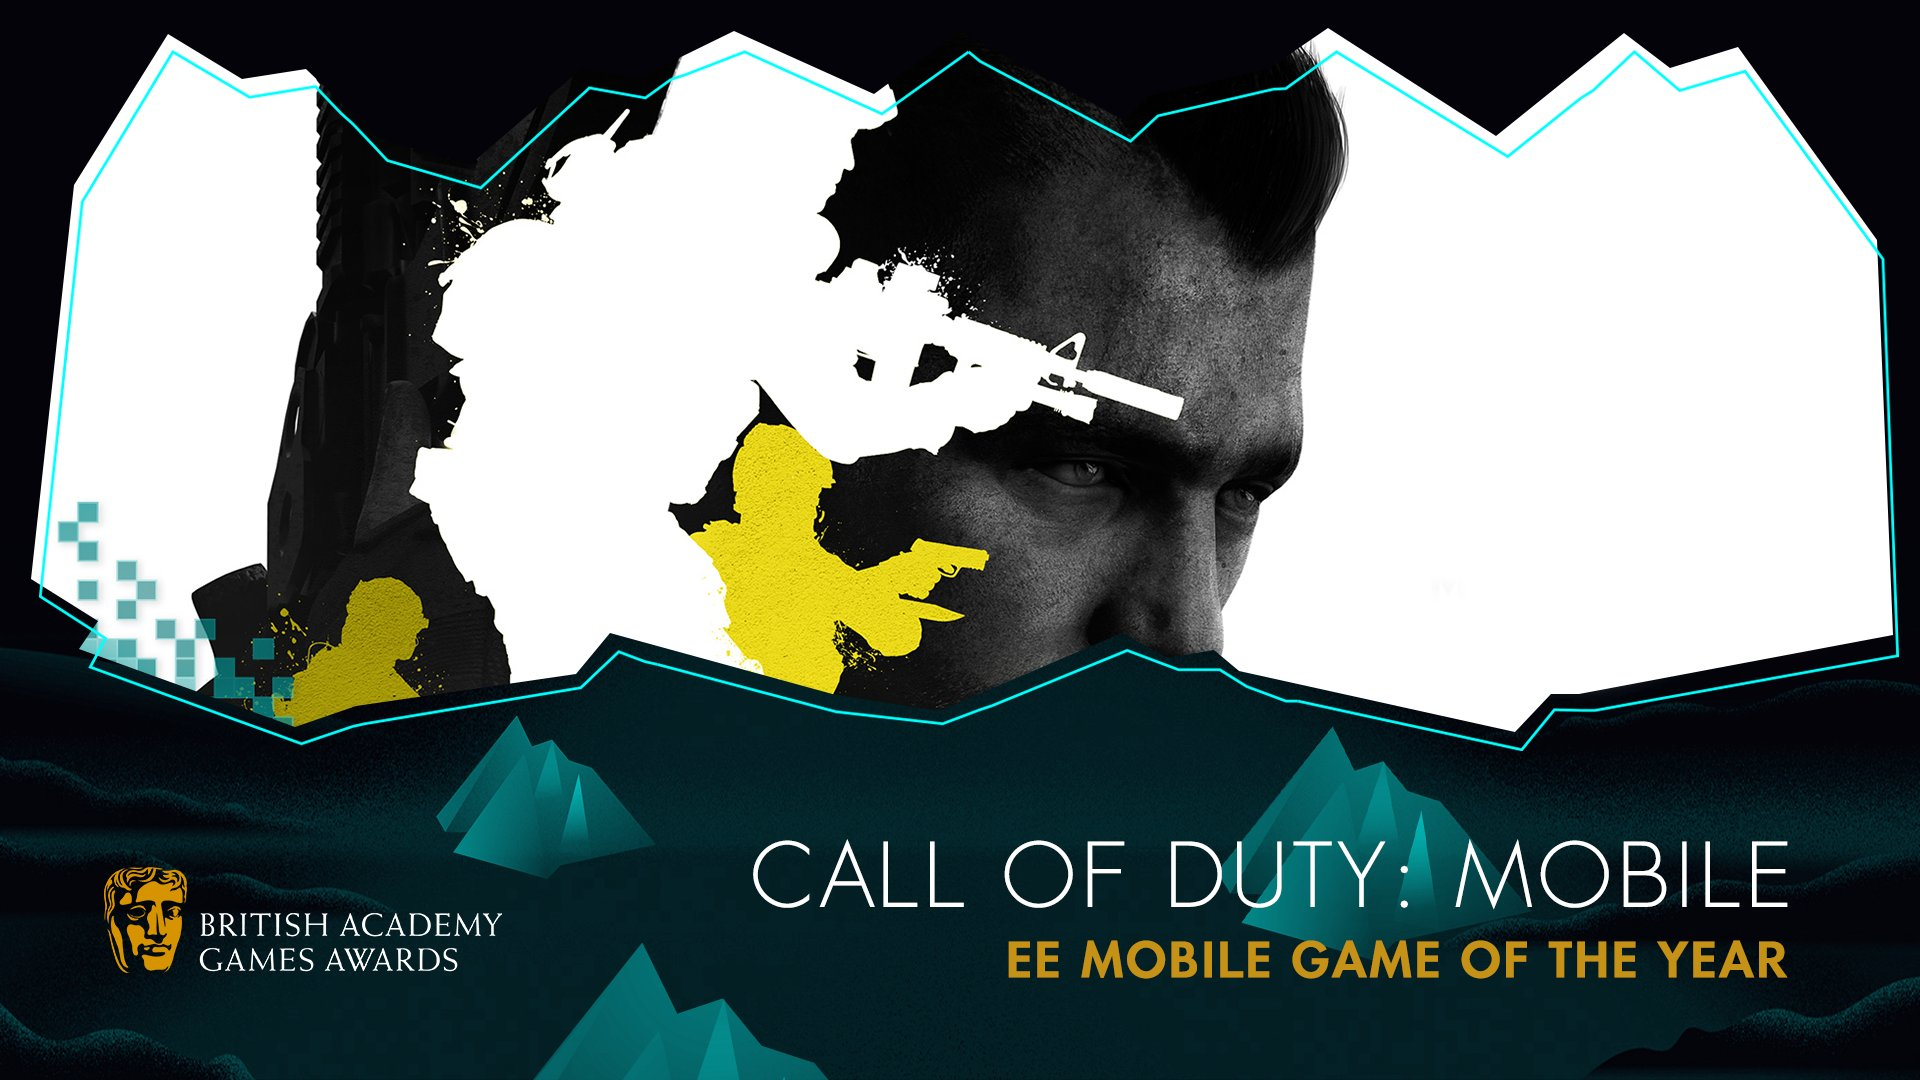 Bafta Games Awards 2020 Mobile